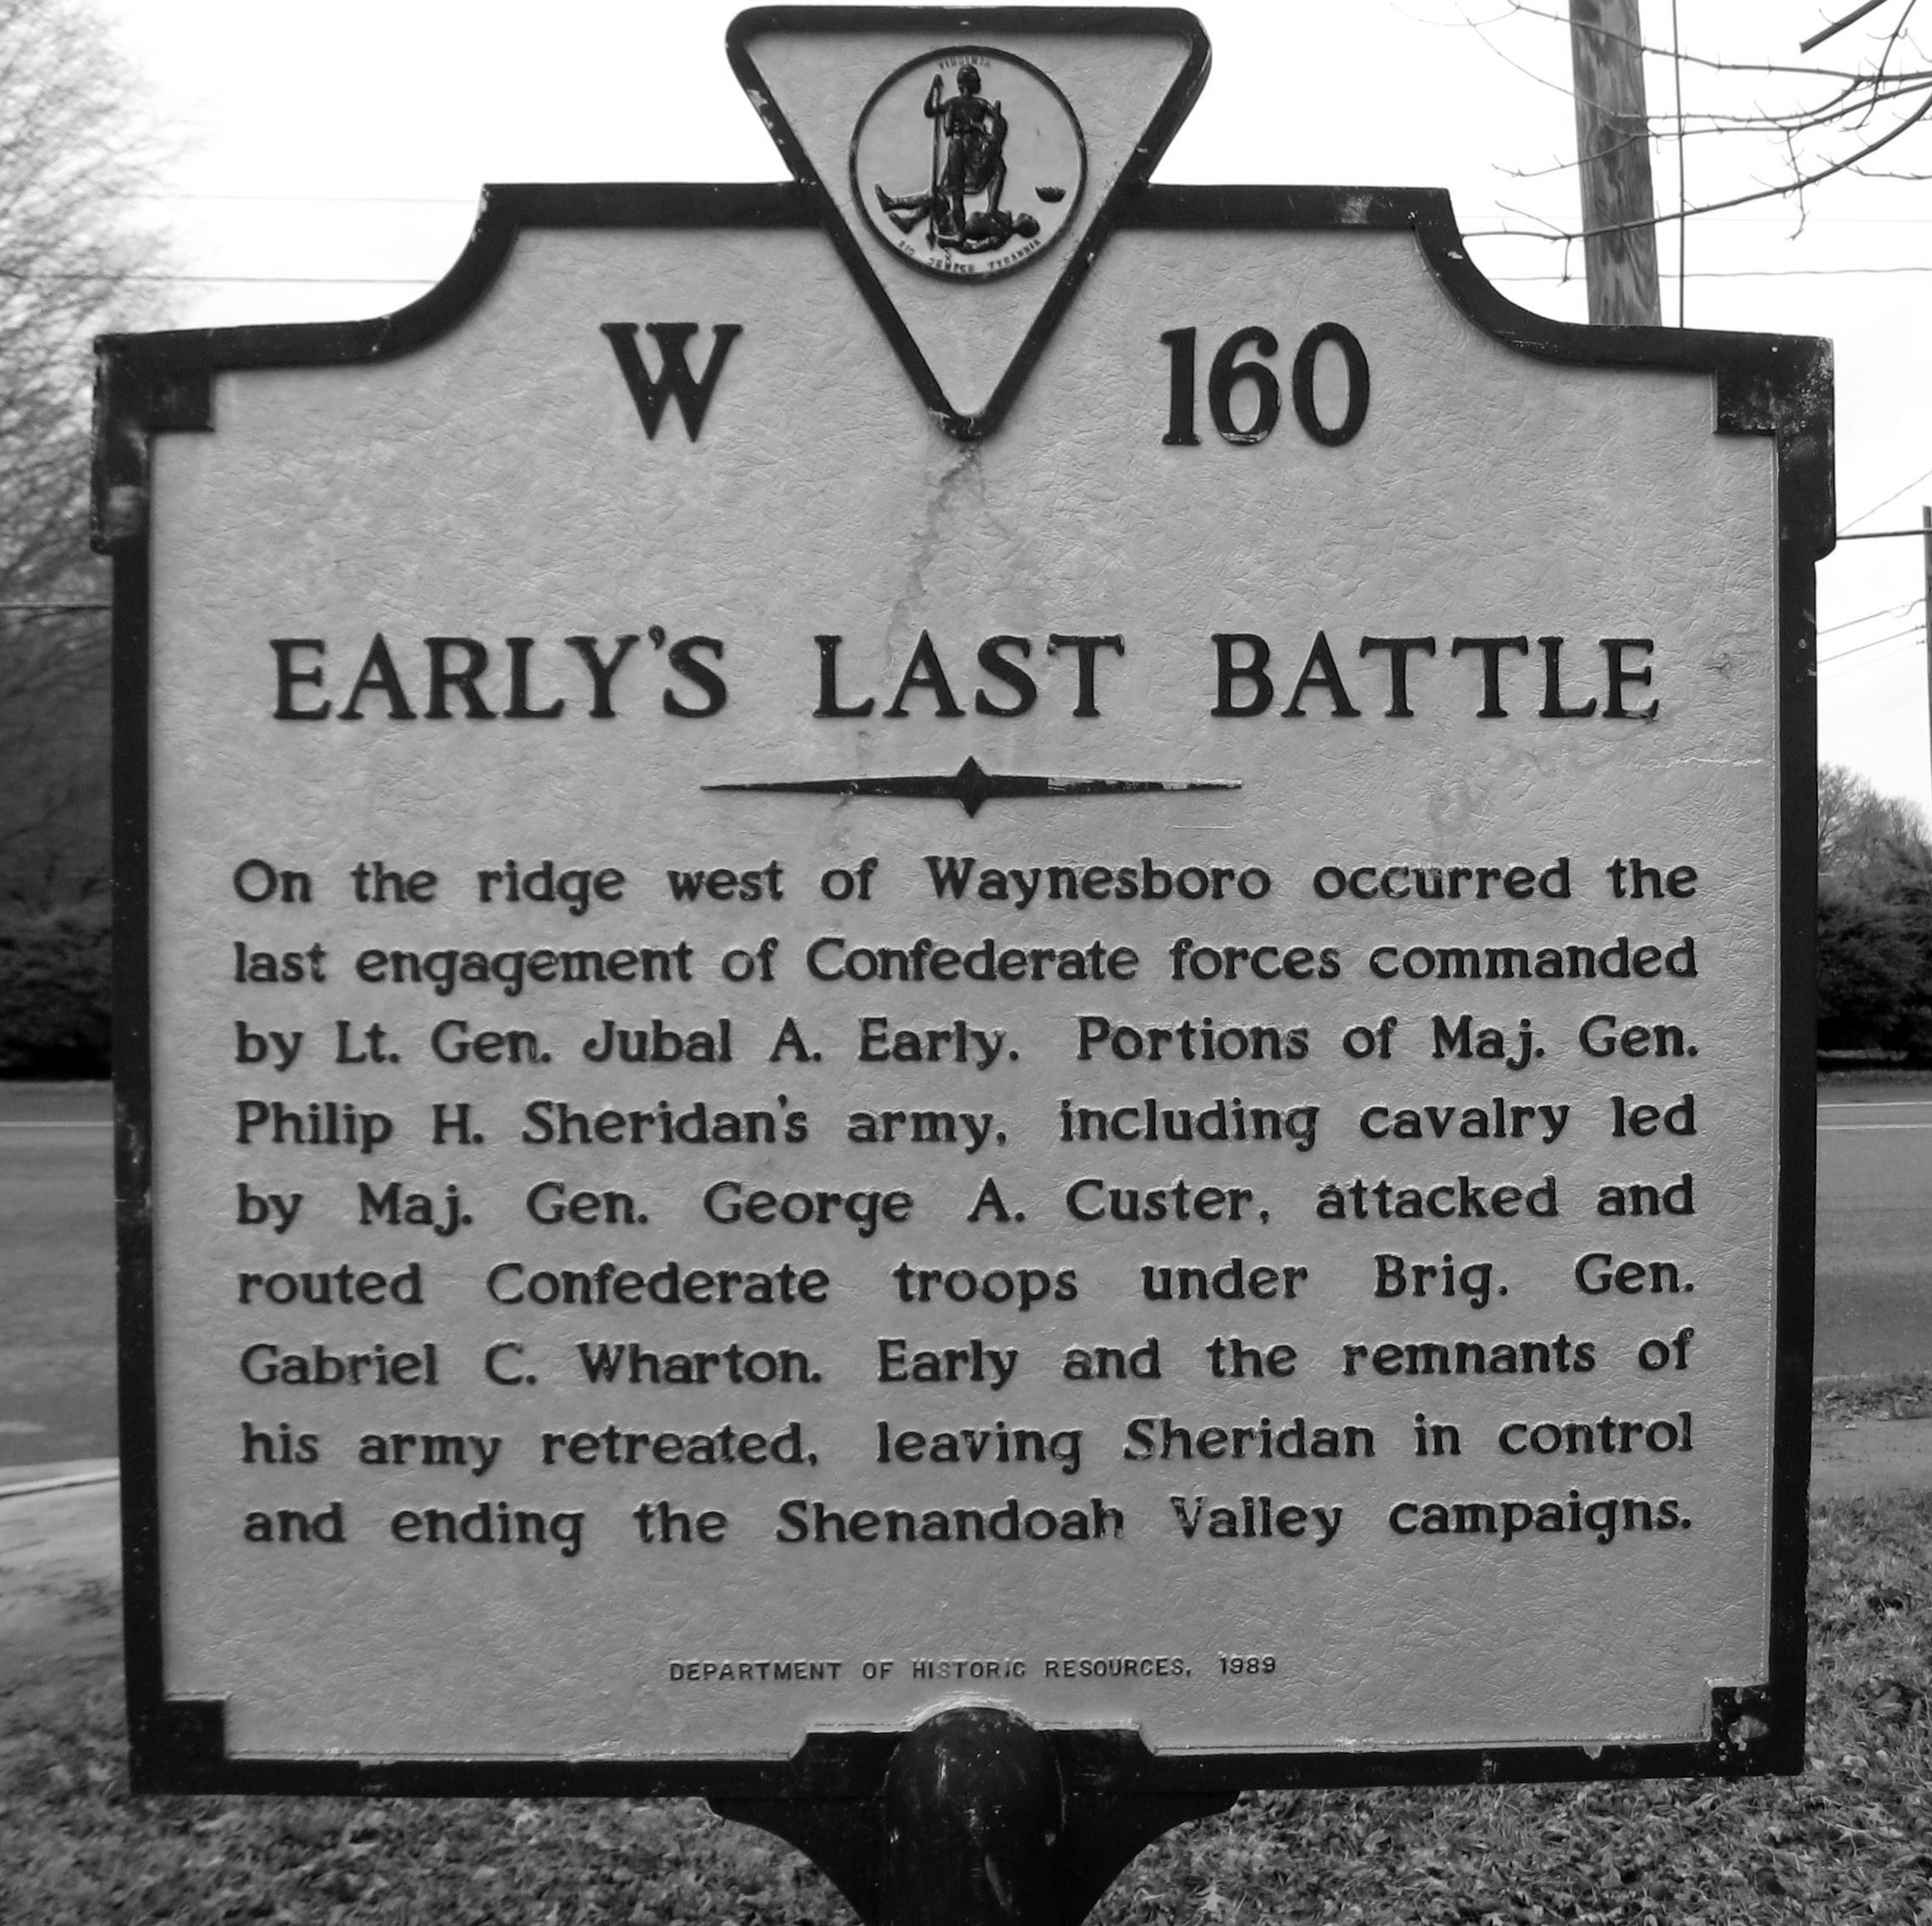 This historic marker emphasizes the battle as the final engagement of Confederate General Jubal Early.